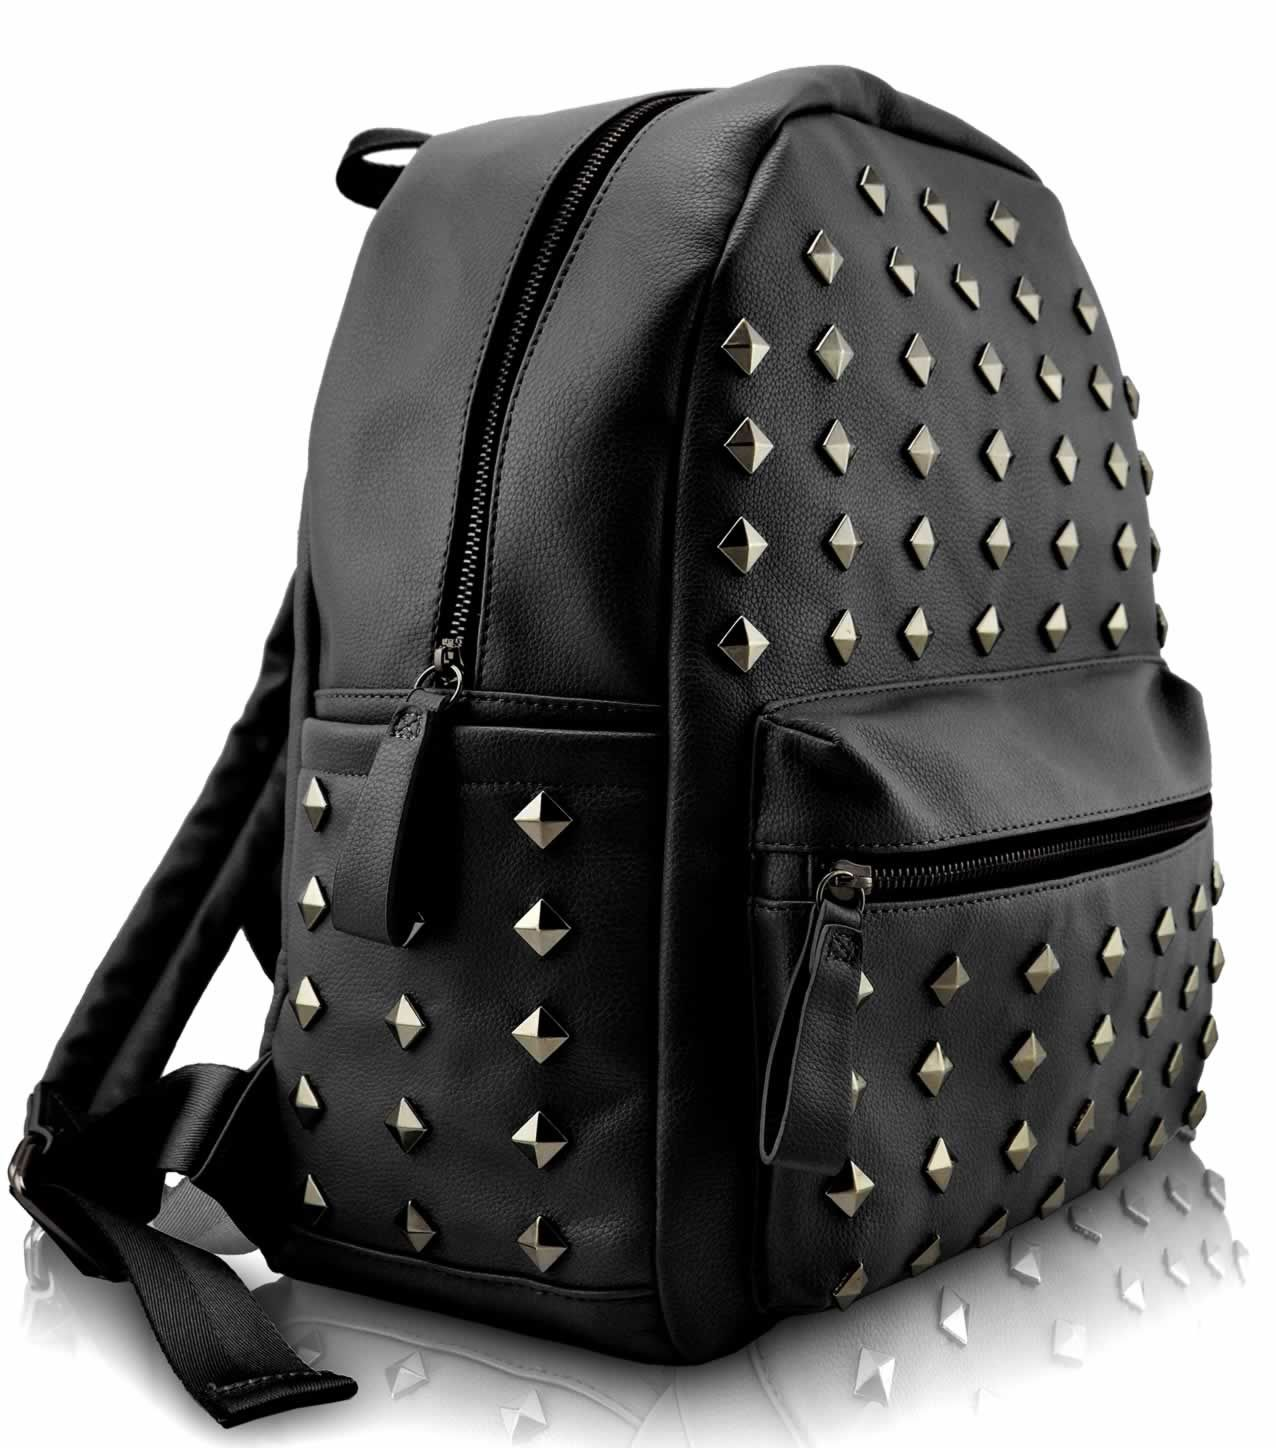 designer backpacks black - Google Search | backpacks | Pinterest ...